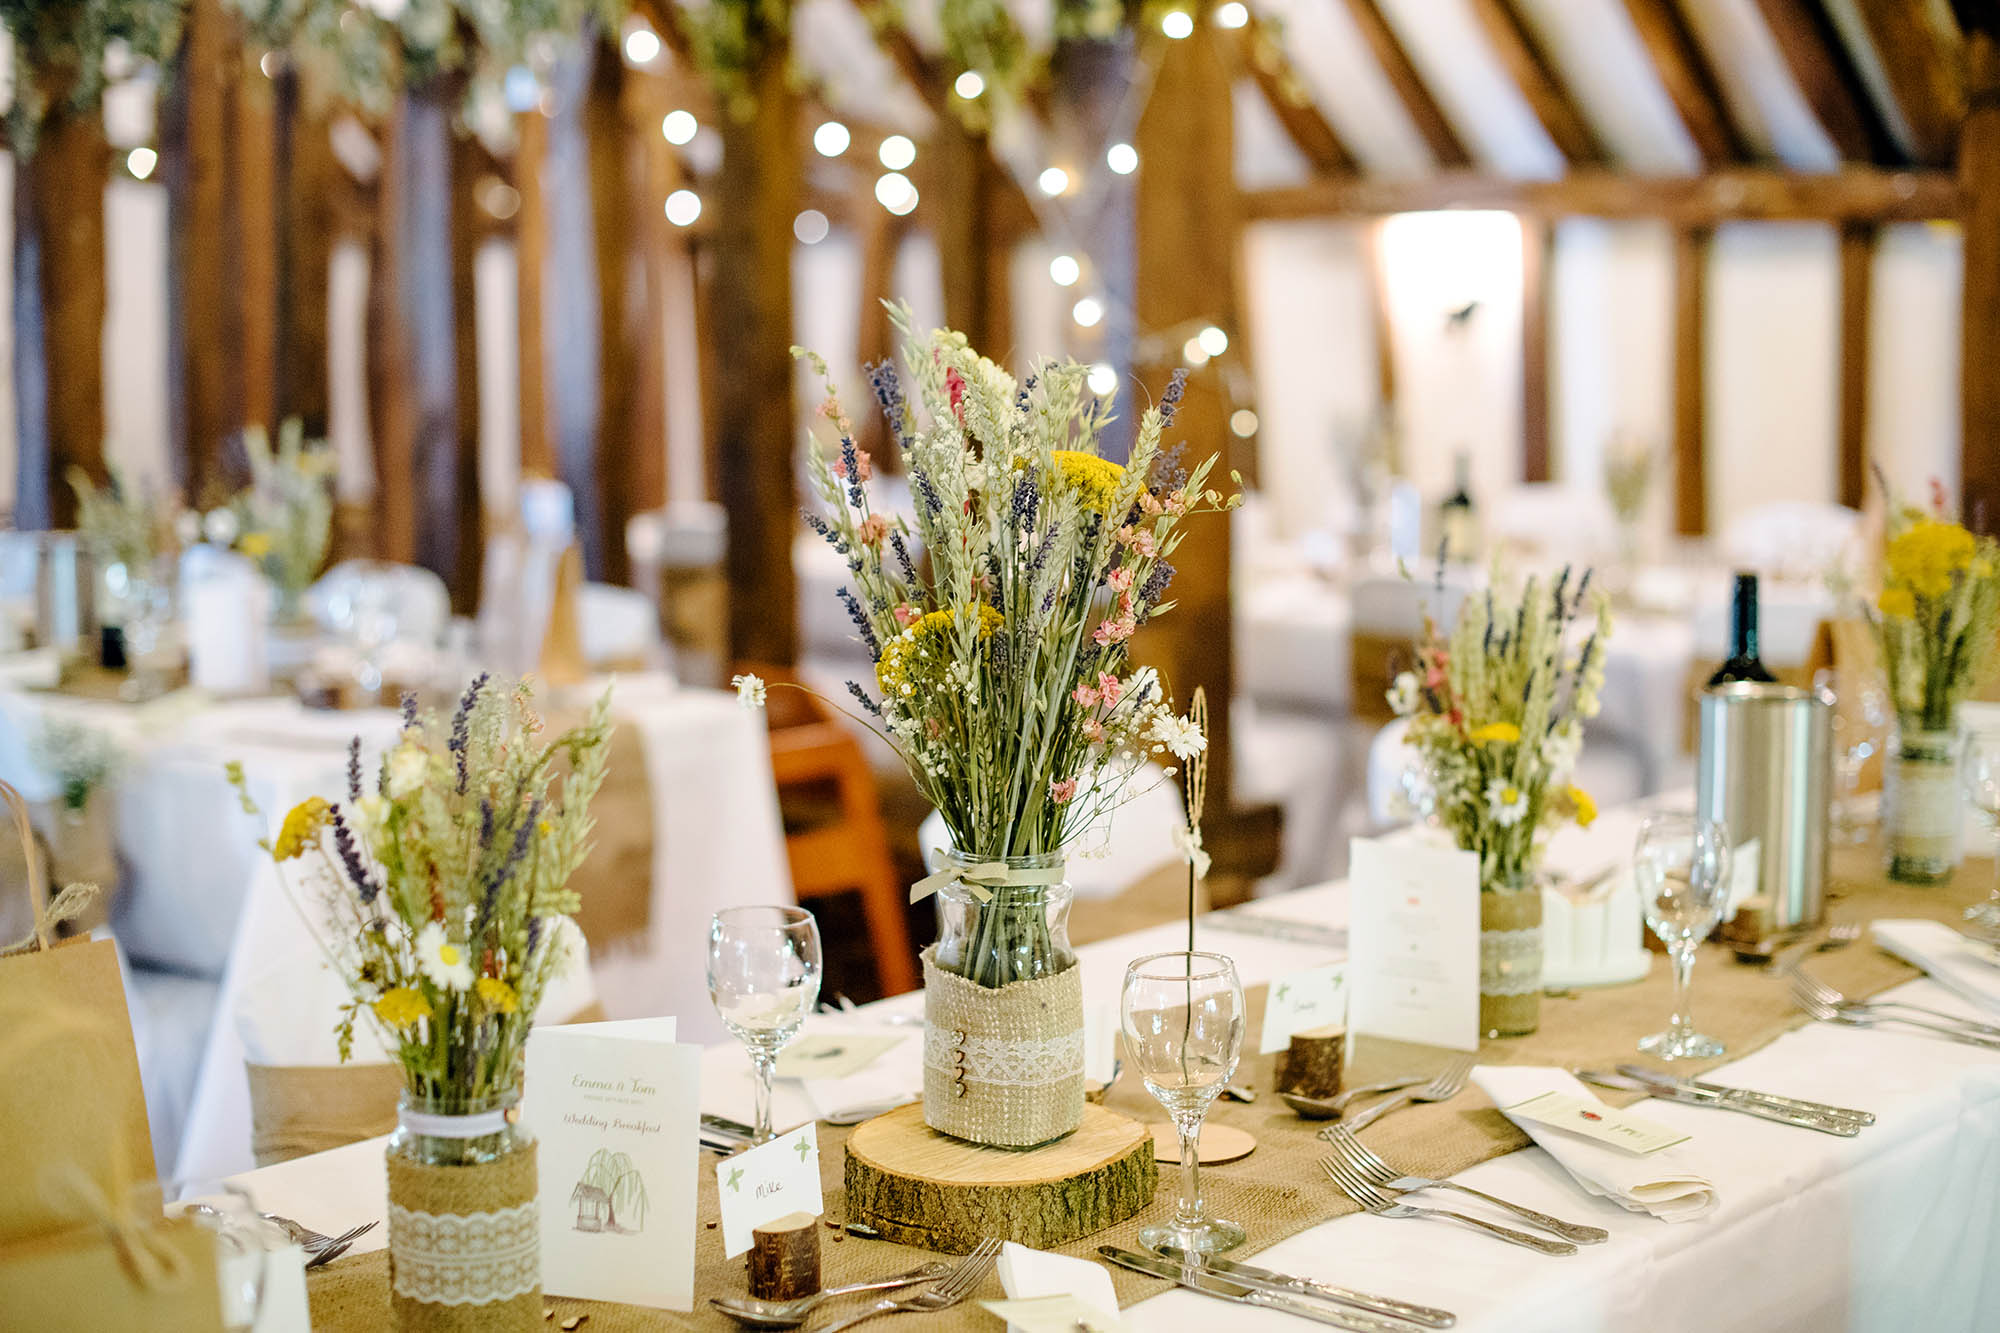 Emma and Tom's country wedding at the Plough at Leigh - early highlights collection. S